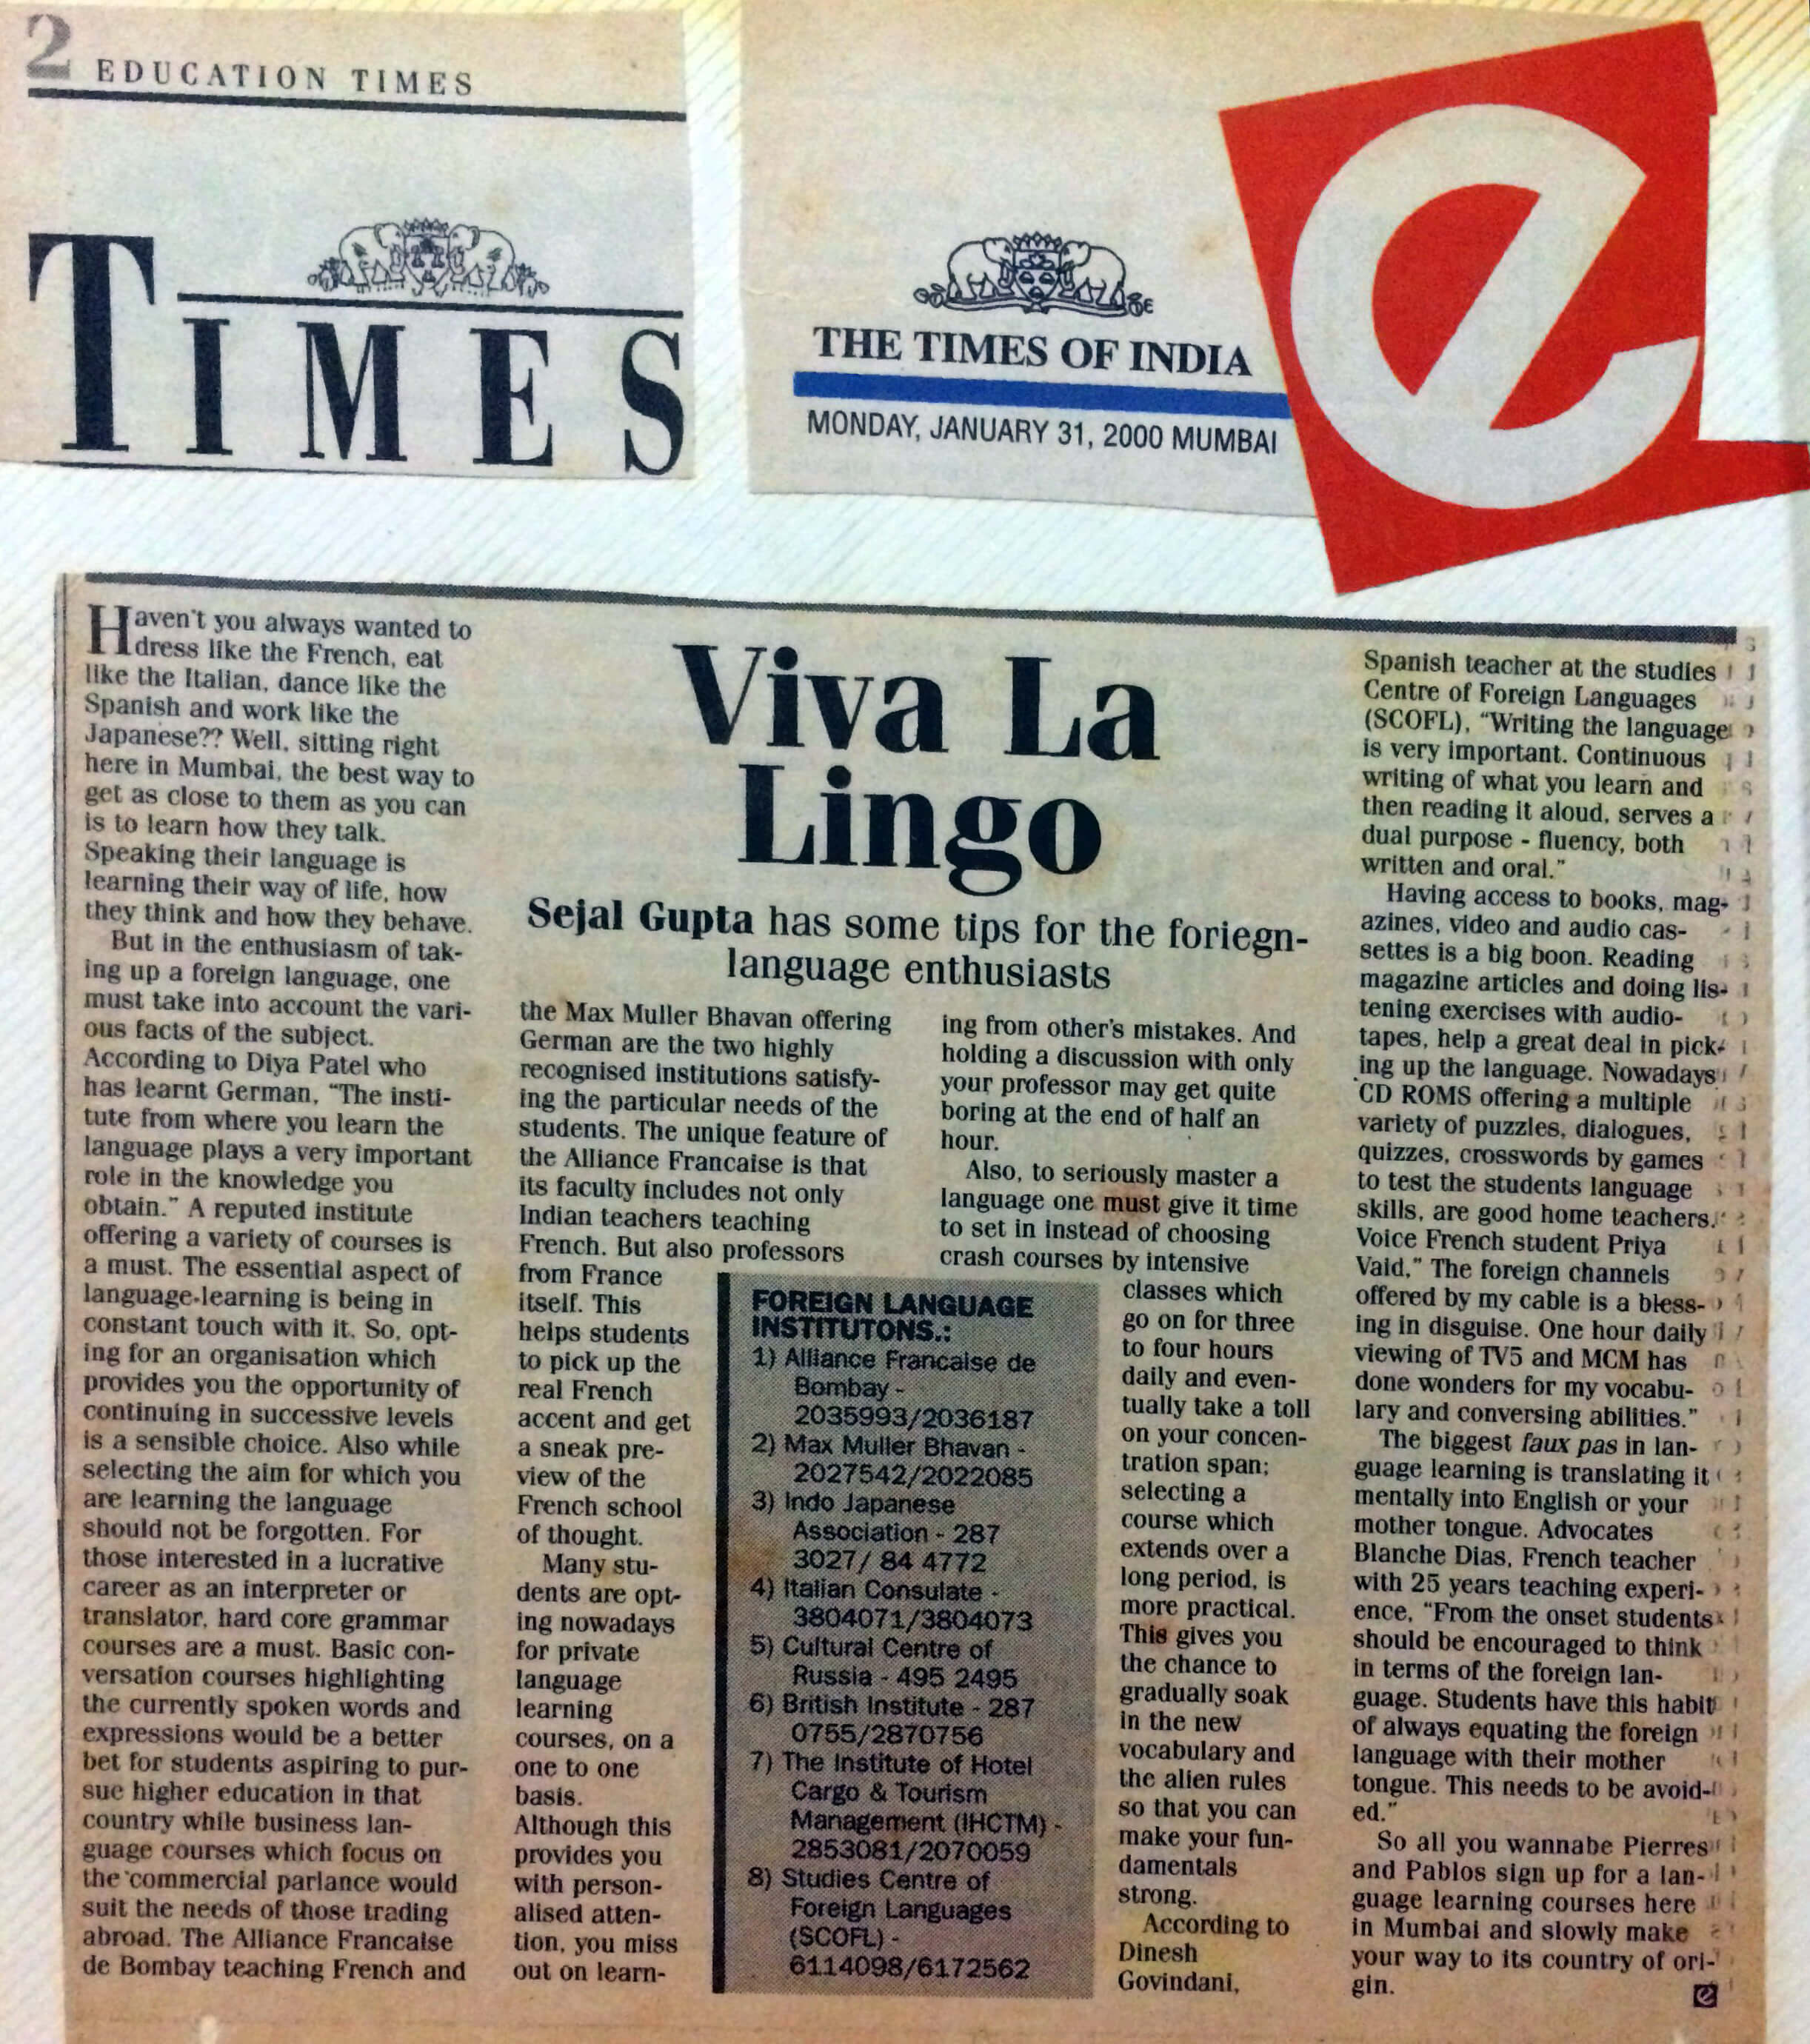 Times of India - Viva La Lingo